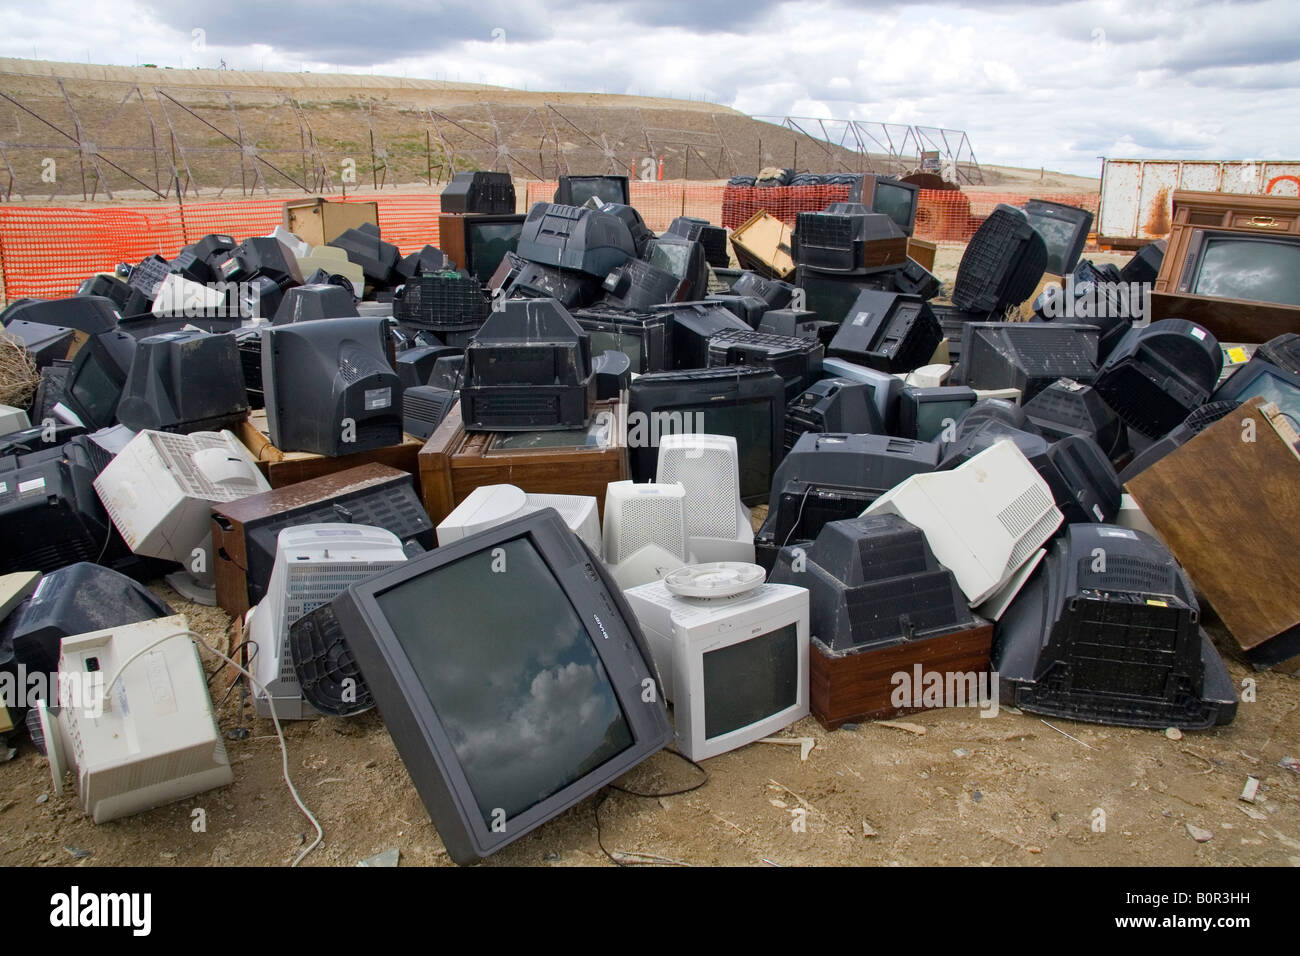 Television and computer monitor recycling at the Ada County Landfill in Boise Idaho - Stock Image